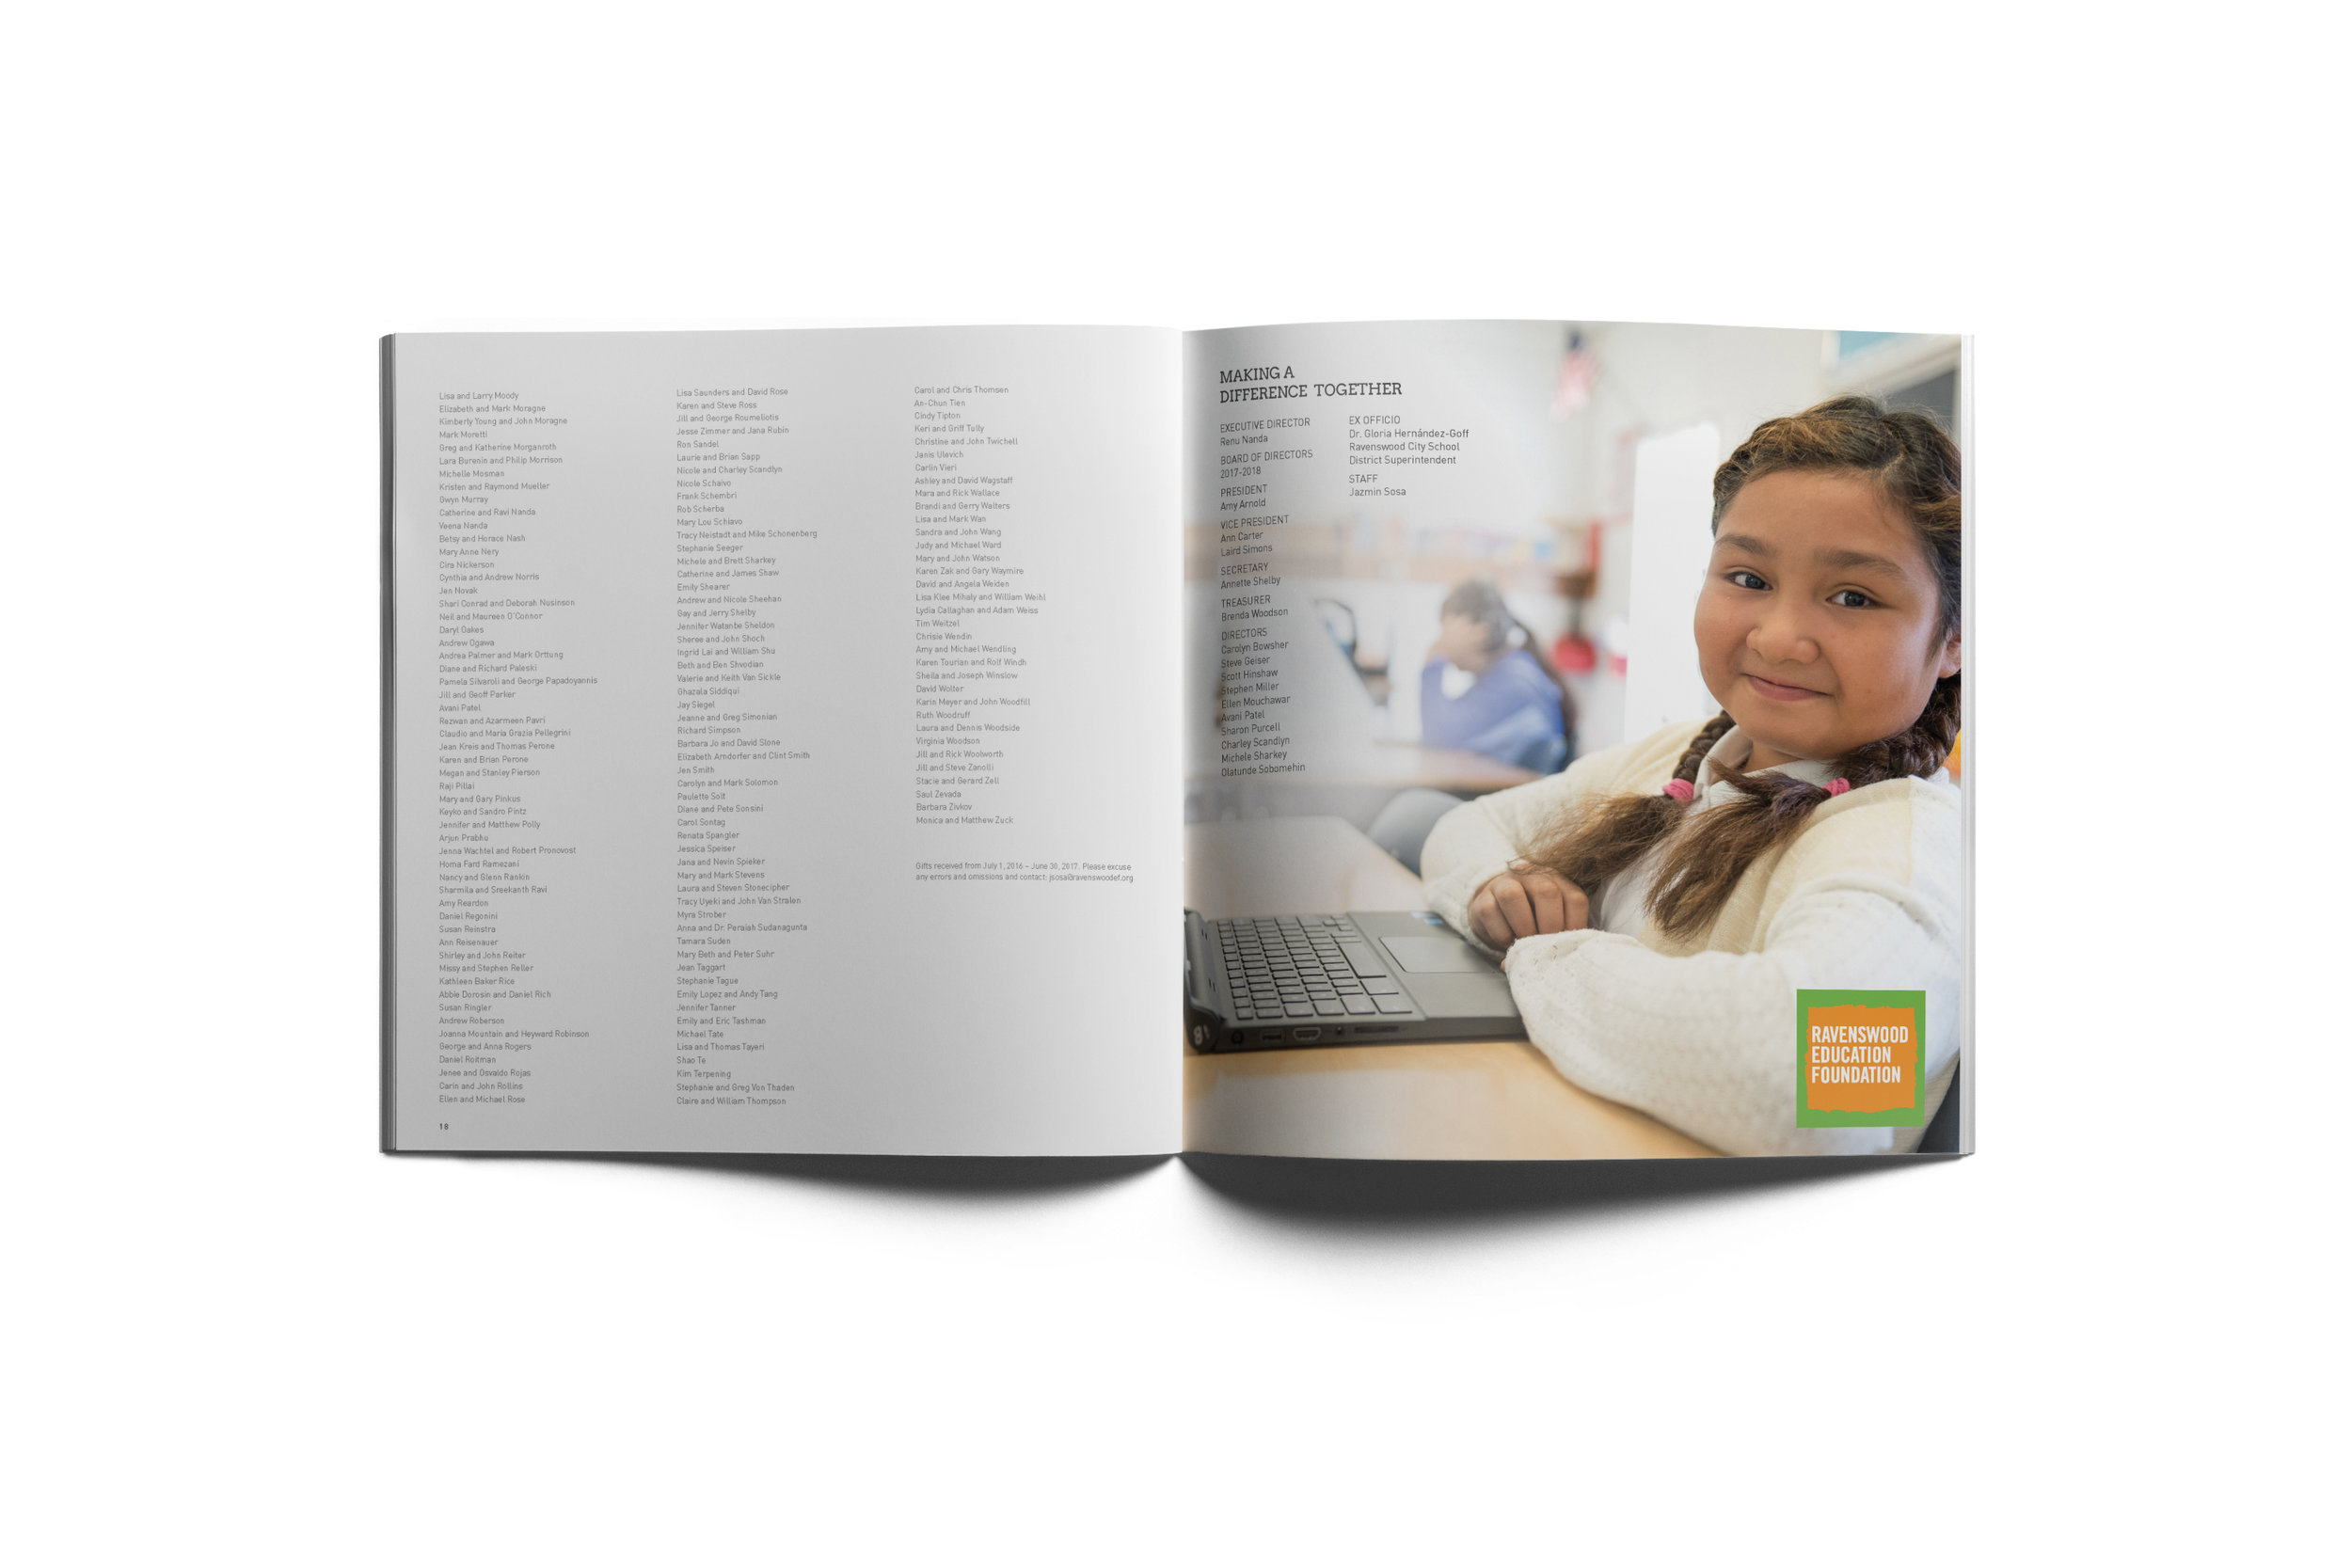 raveneswood education foundation_0005s_0001_annual report 17-18.jpg